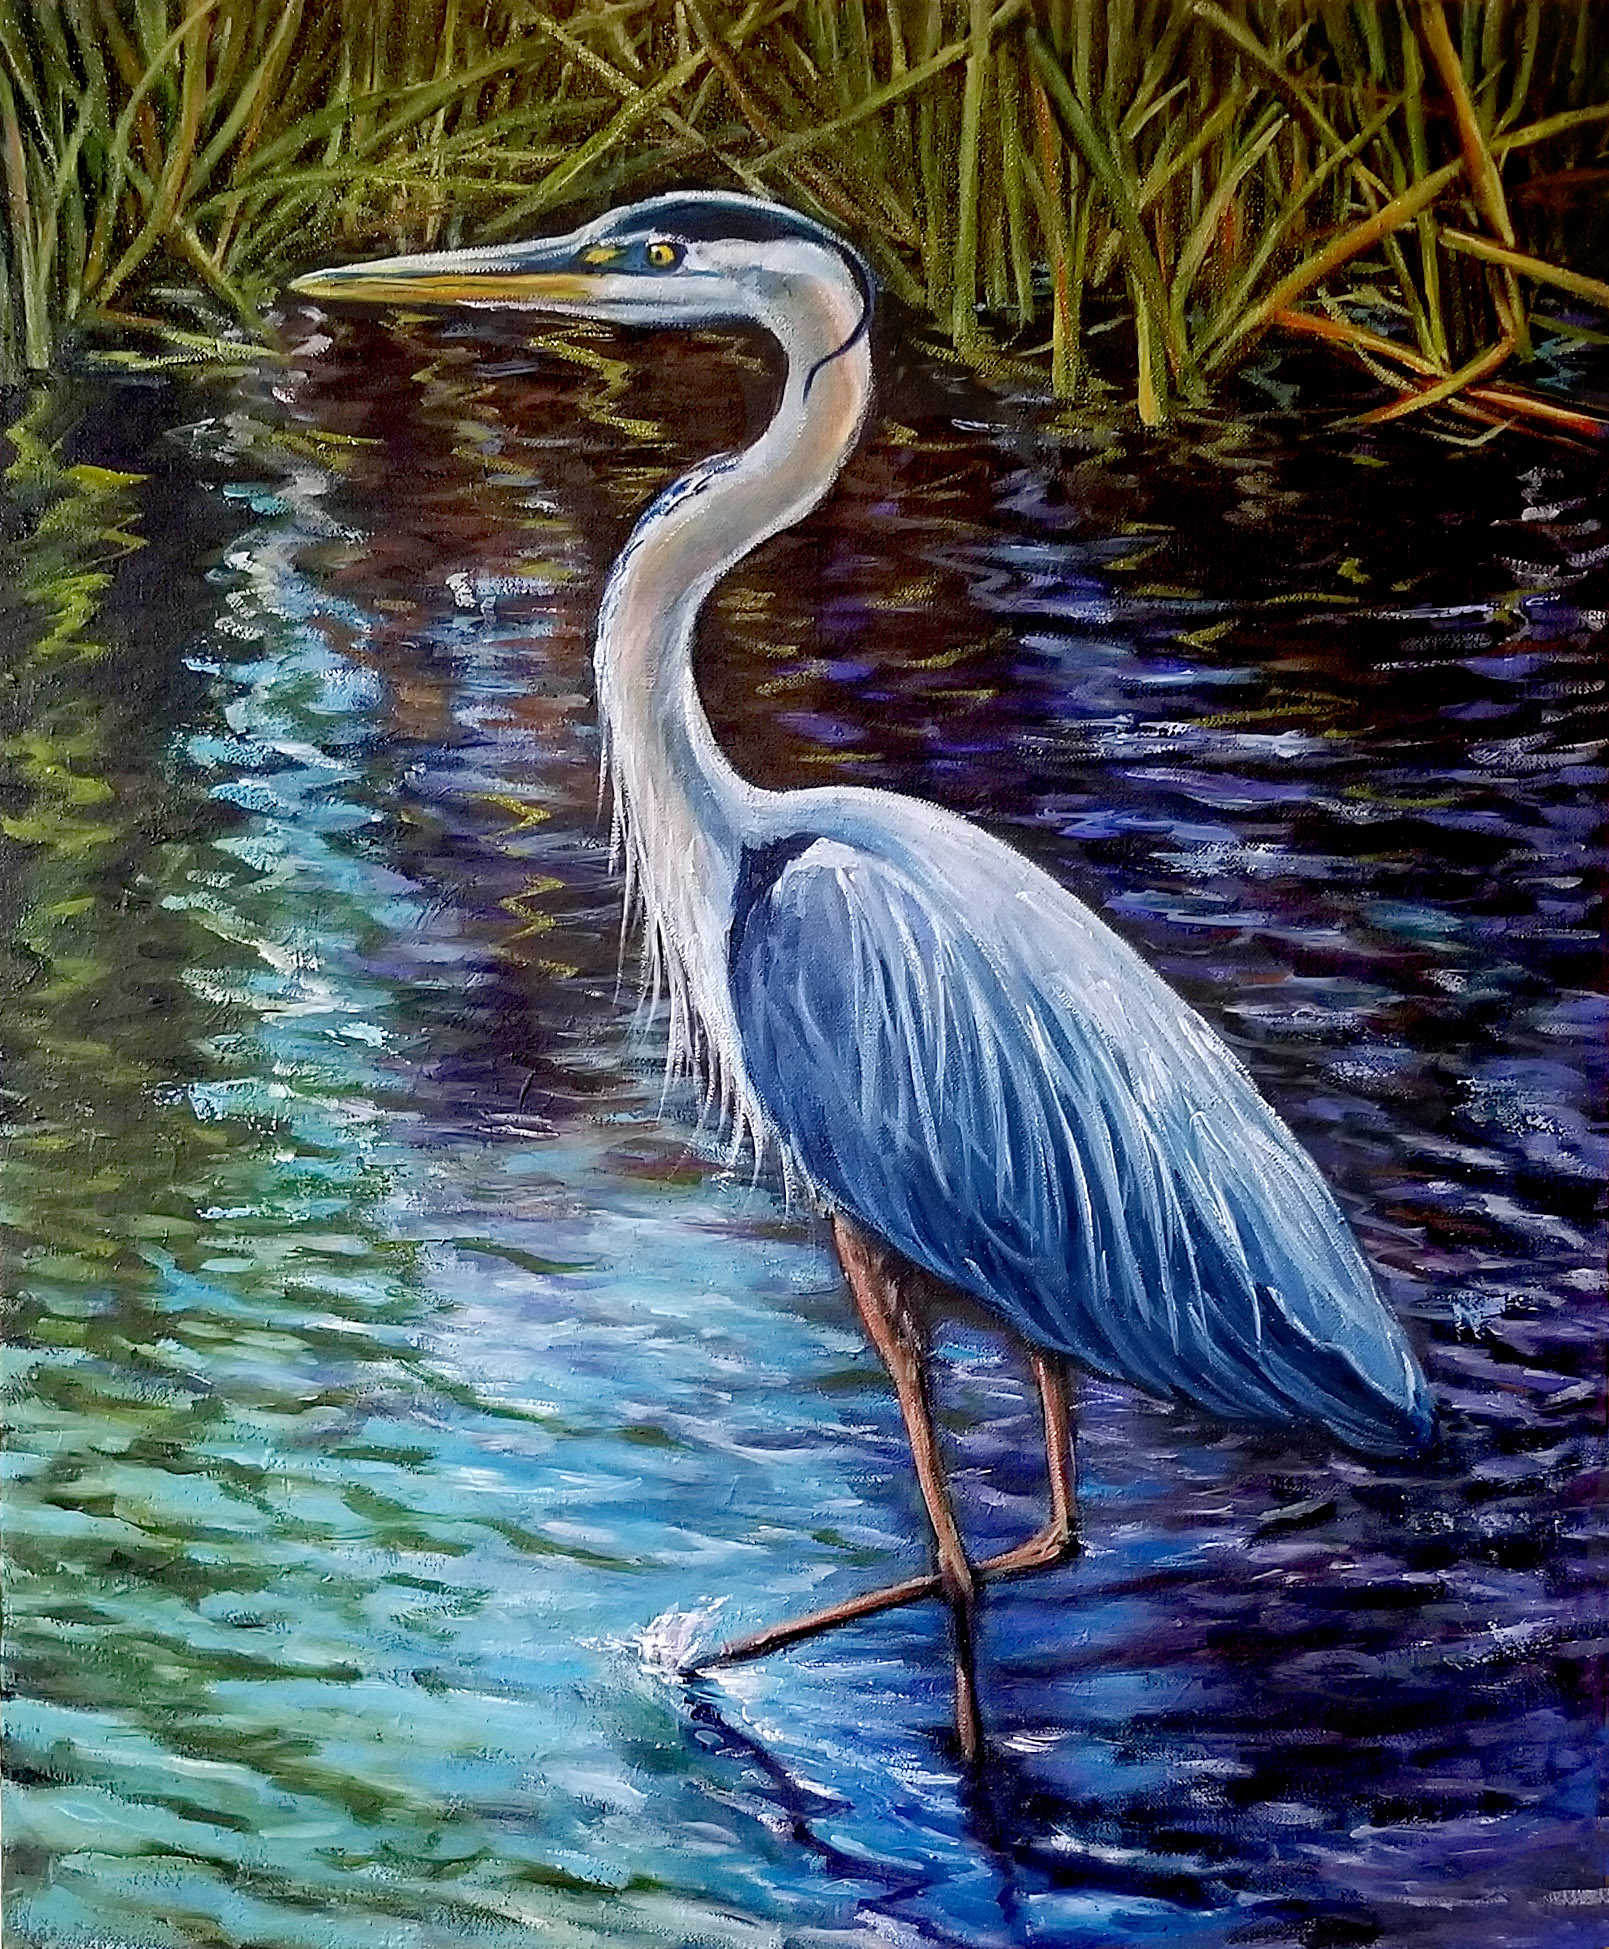 Heron wading in water Everglades